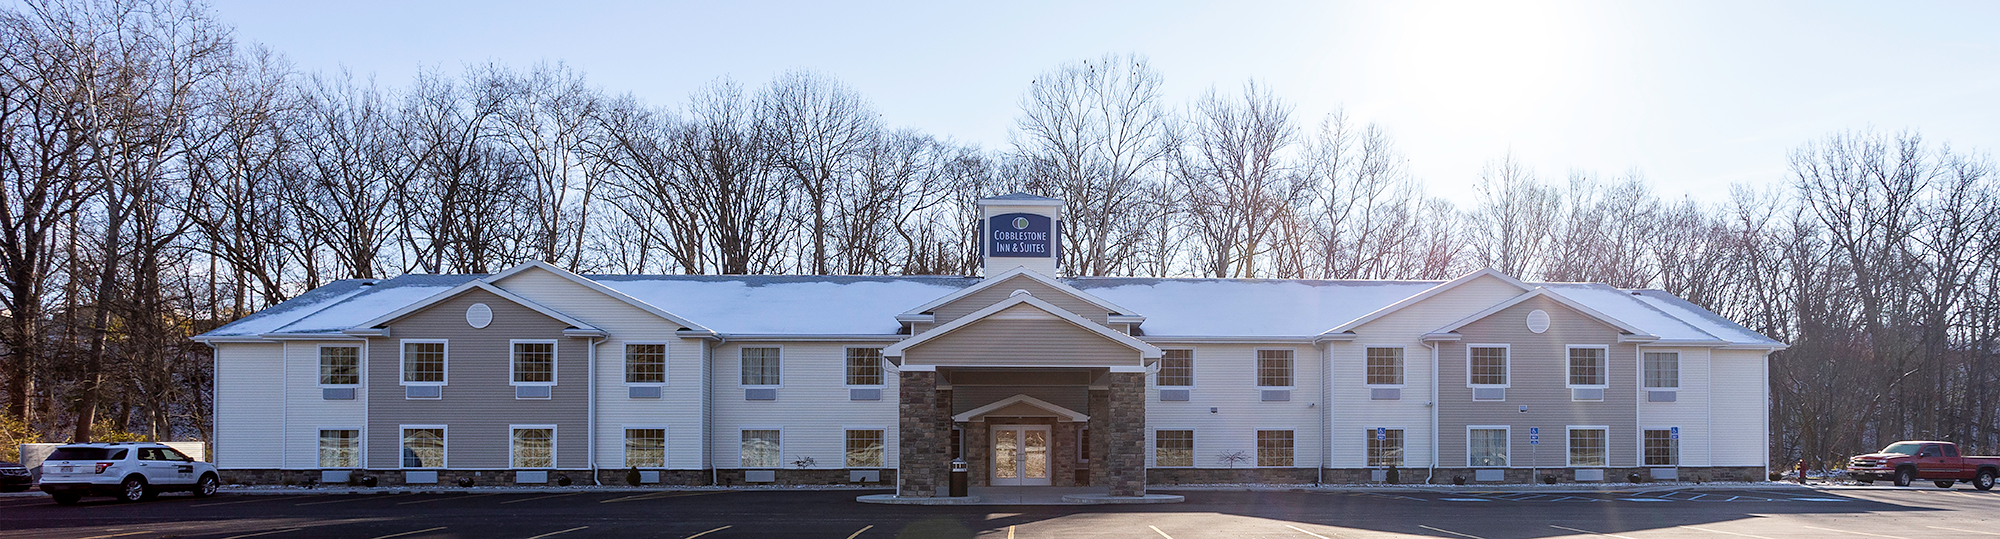 Cobblestone Inn & Suites Brookville